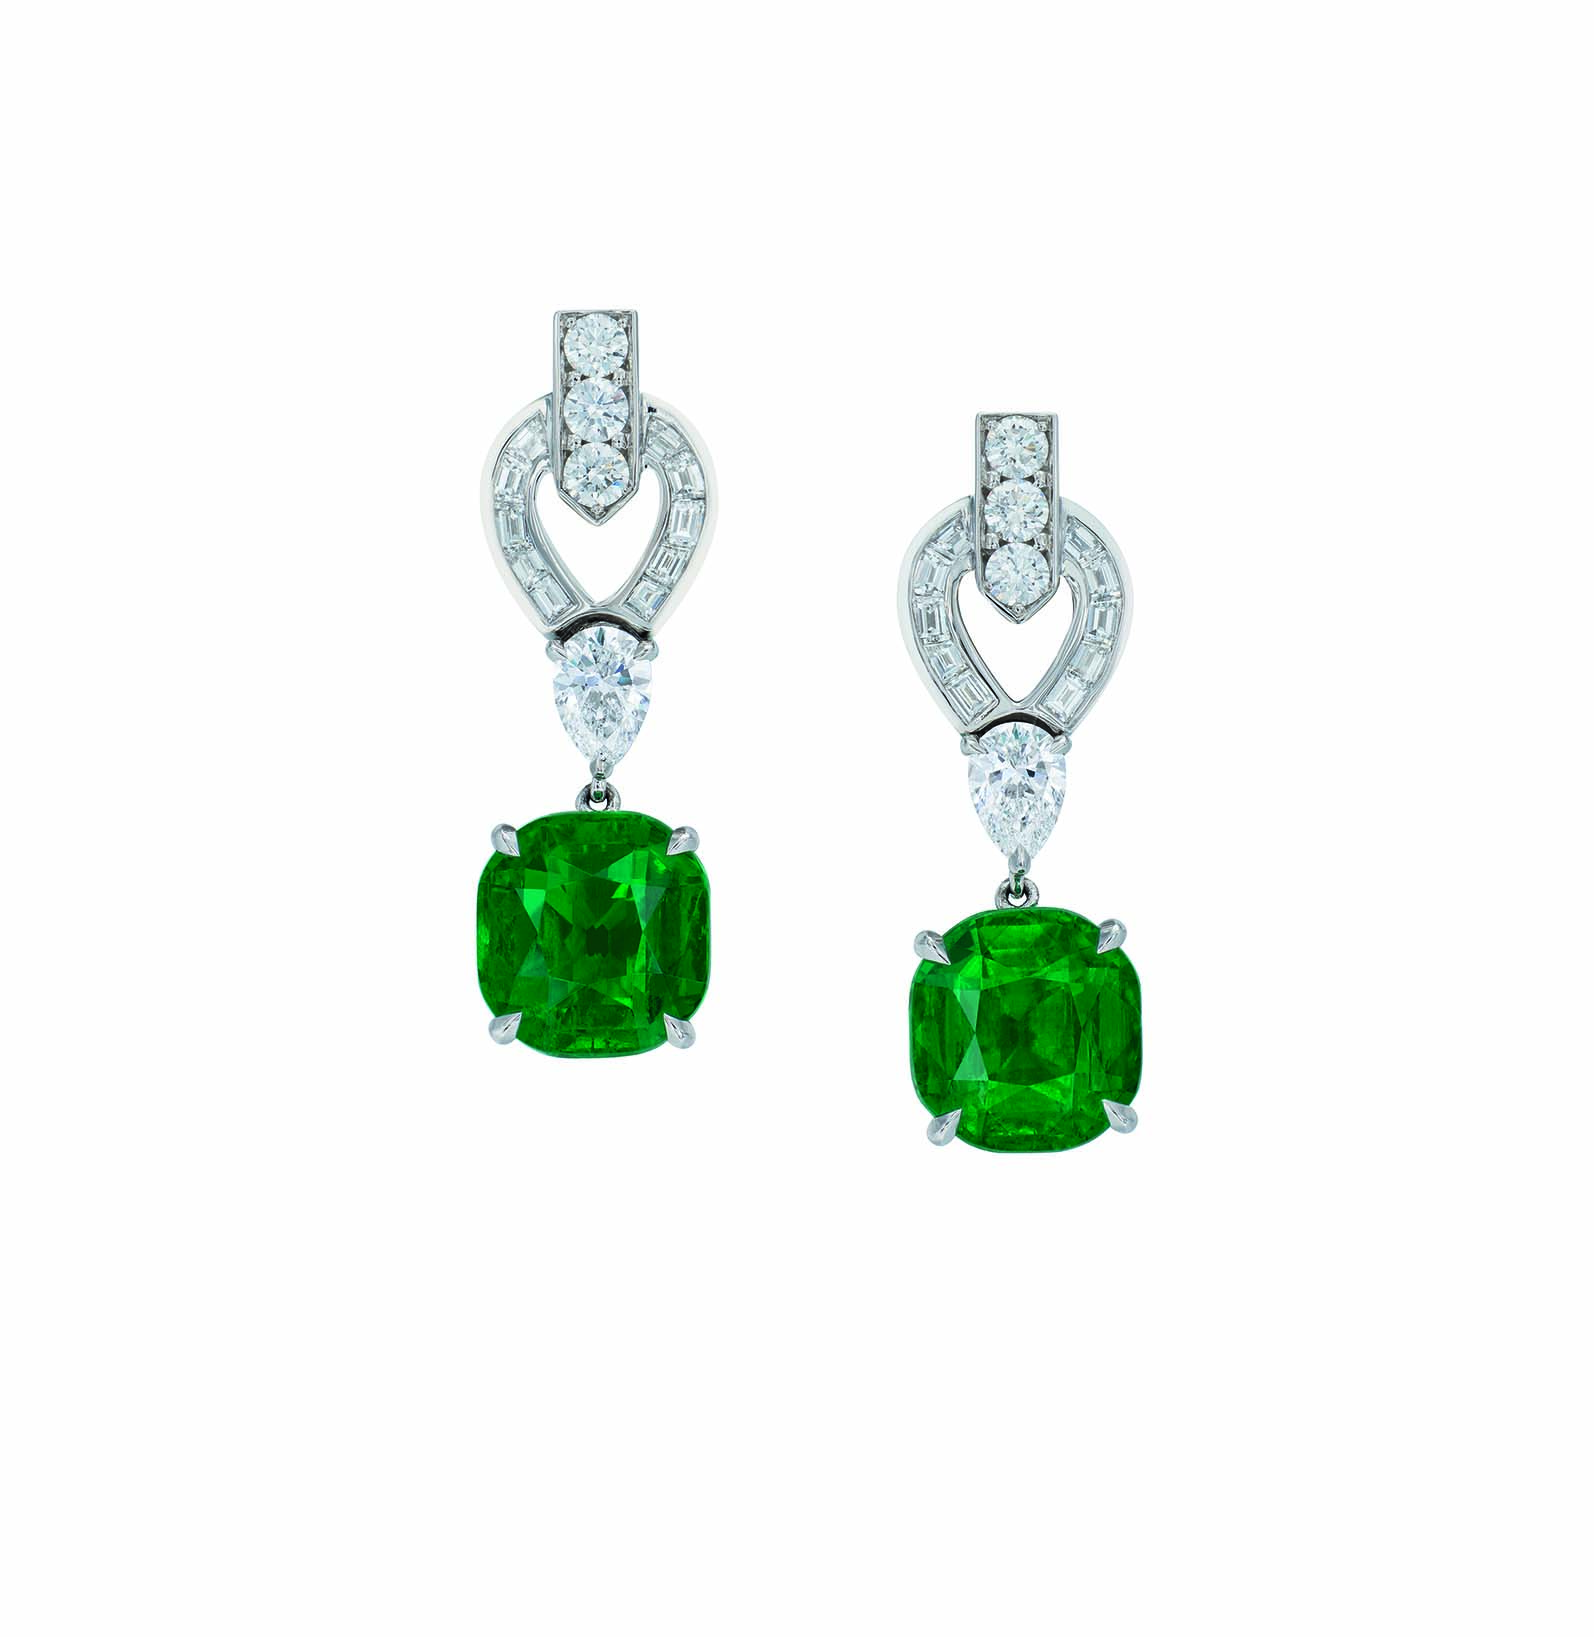 closures product colombian with natural one and emerald diamond lever back of a kind shaped earrings pear pair